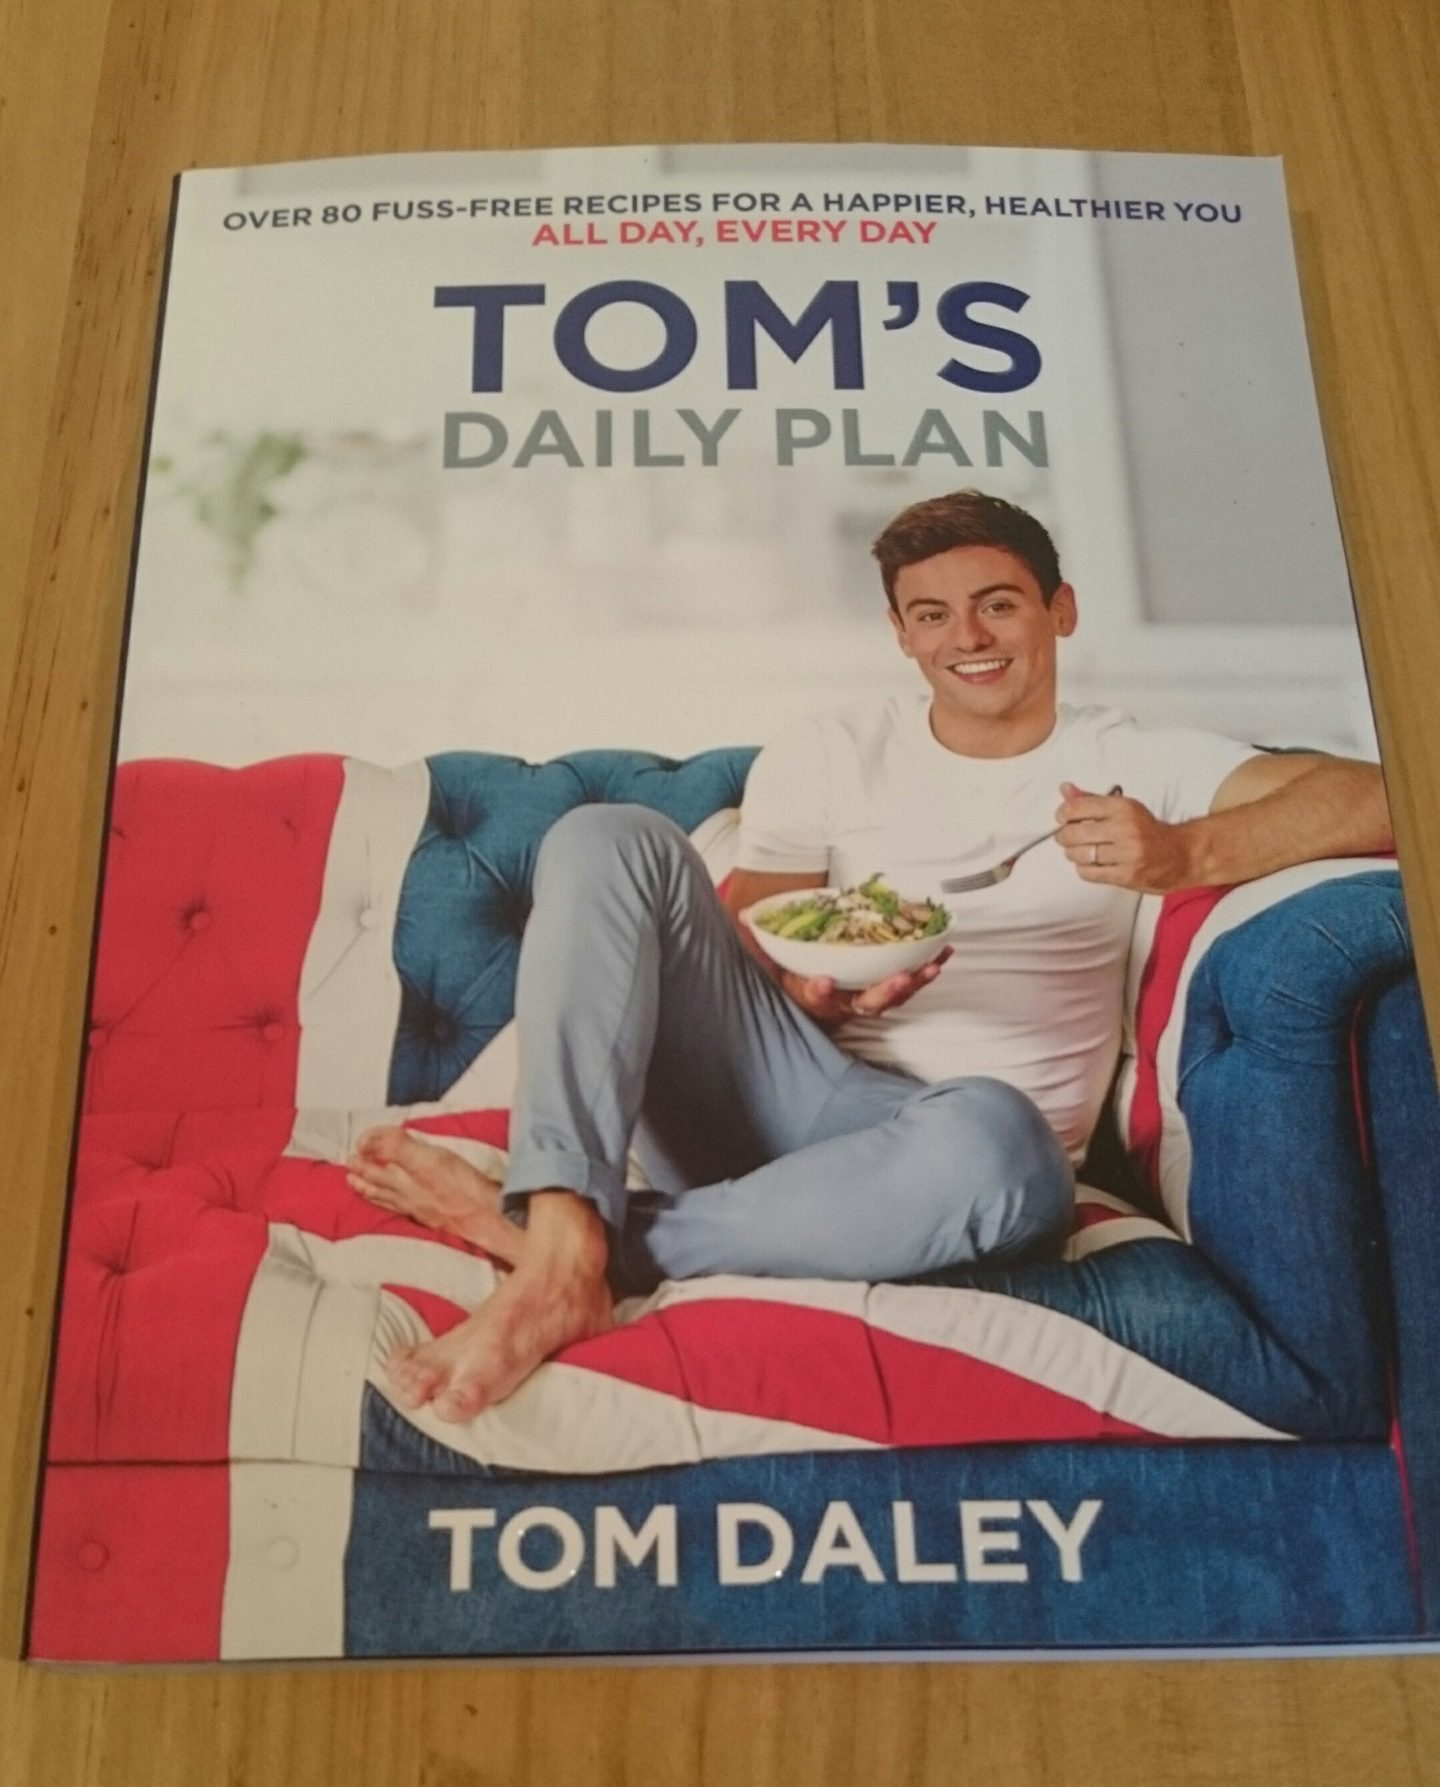 Tom's Daily Plan Review